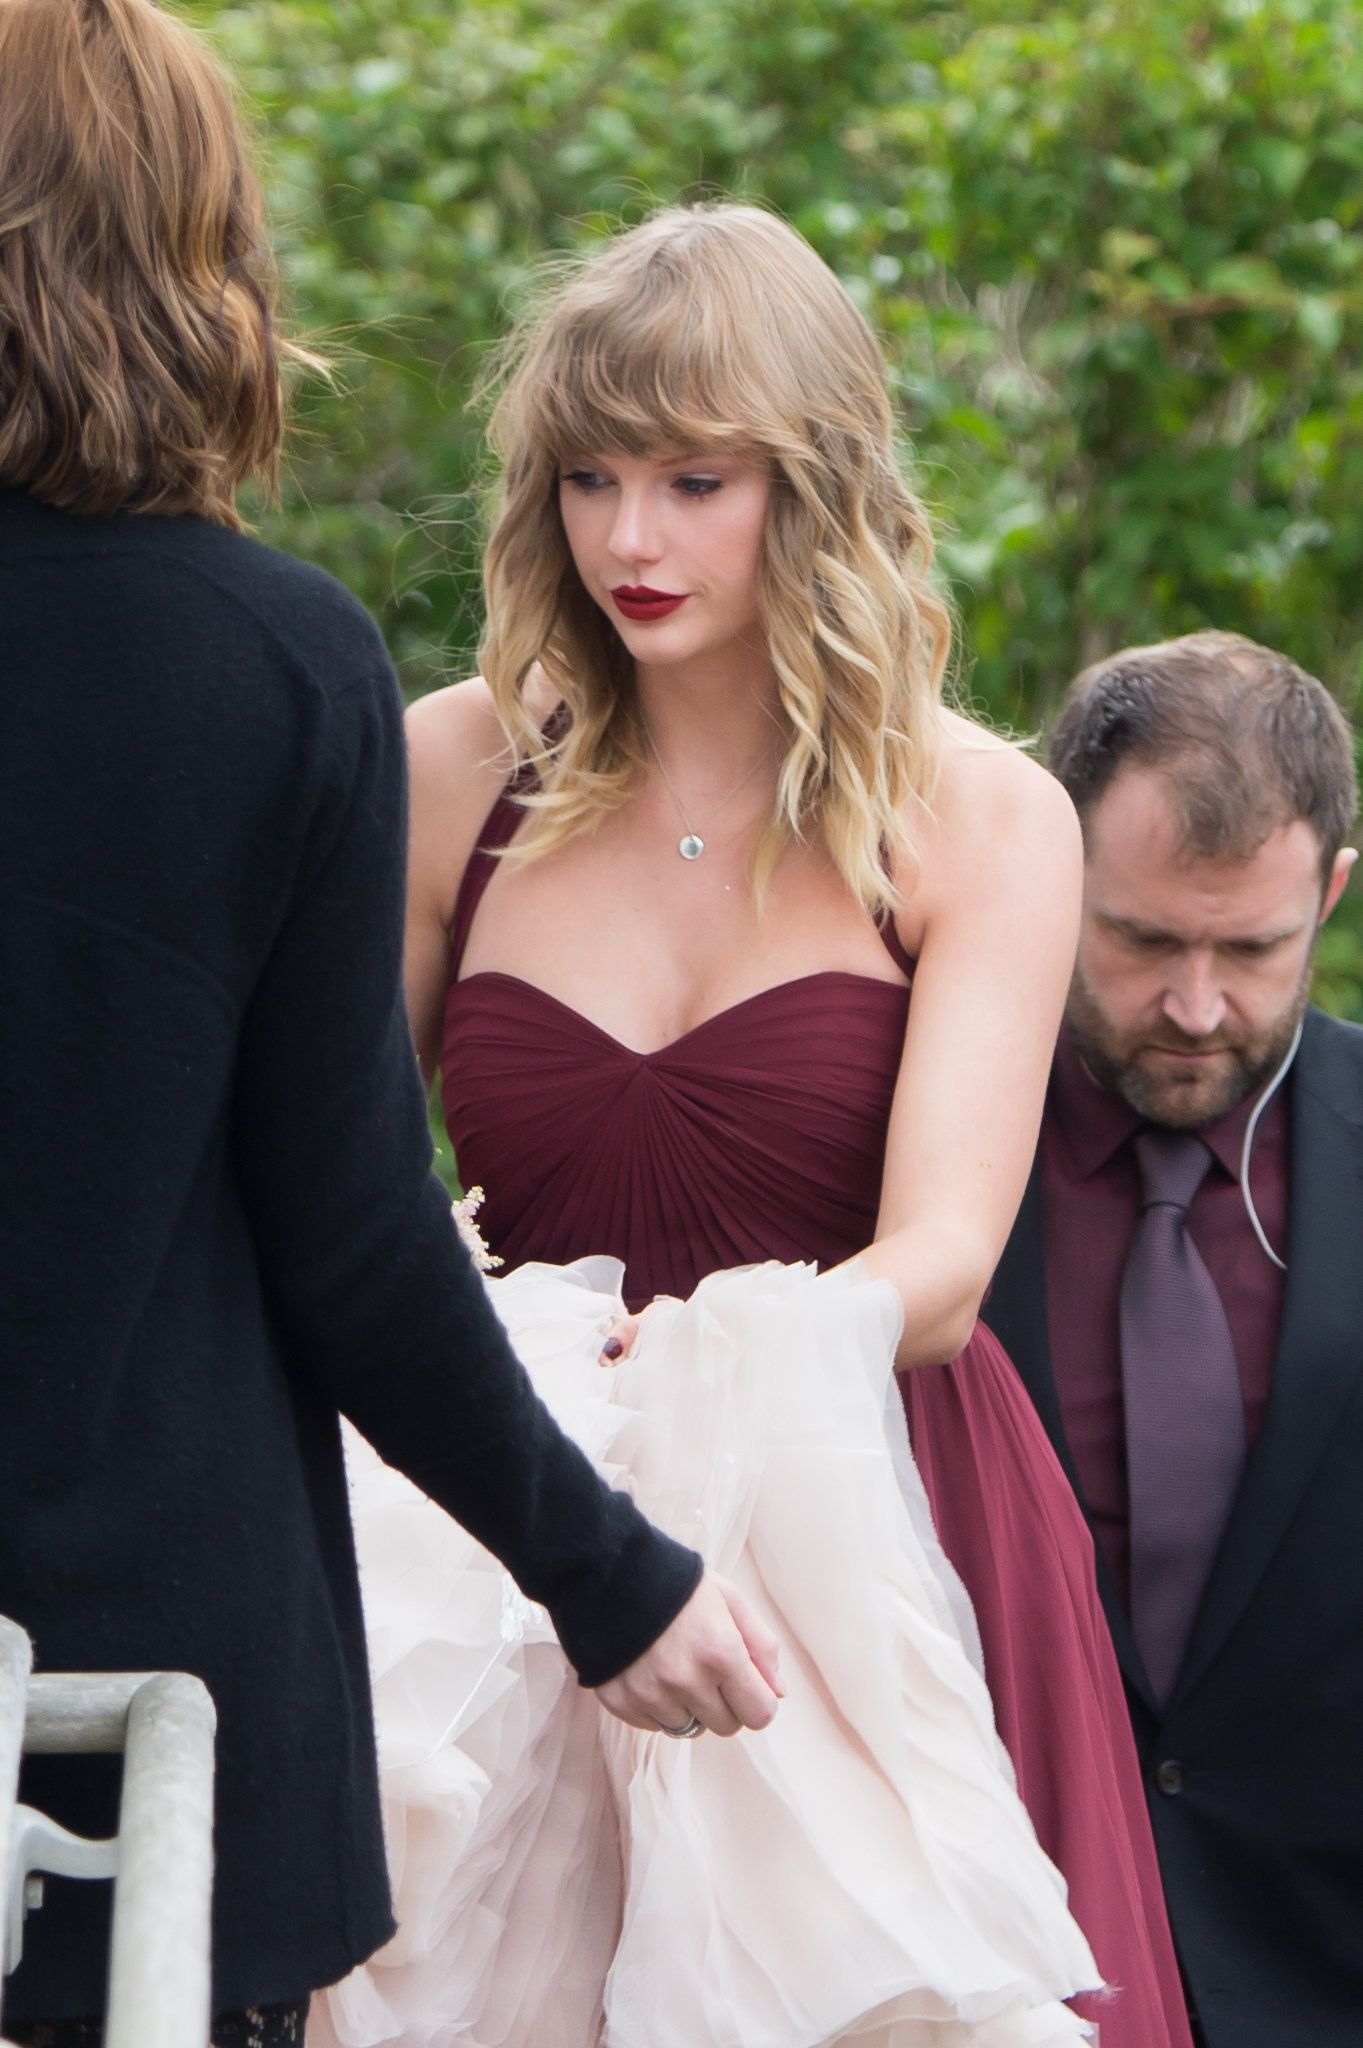 Taylor Swift is seen carrying the back of her BFF Abigail's wedding dress as they arrive at a church...